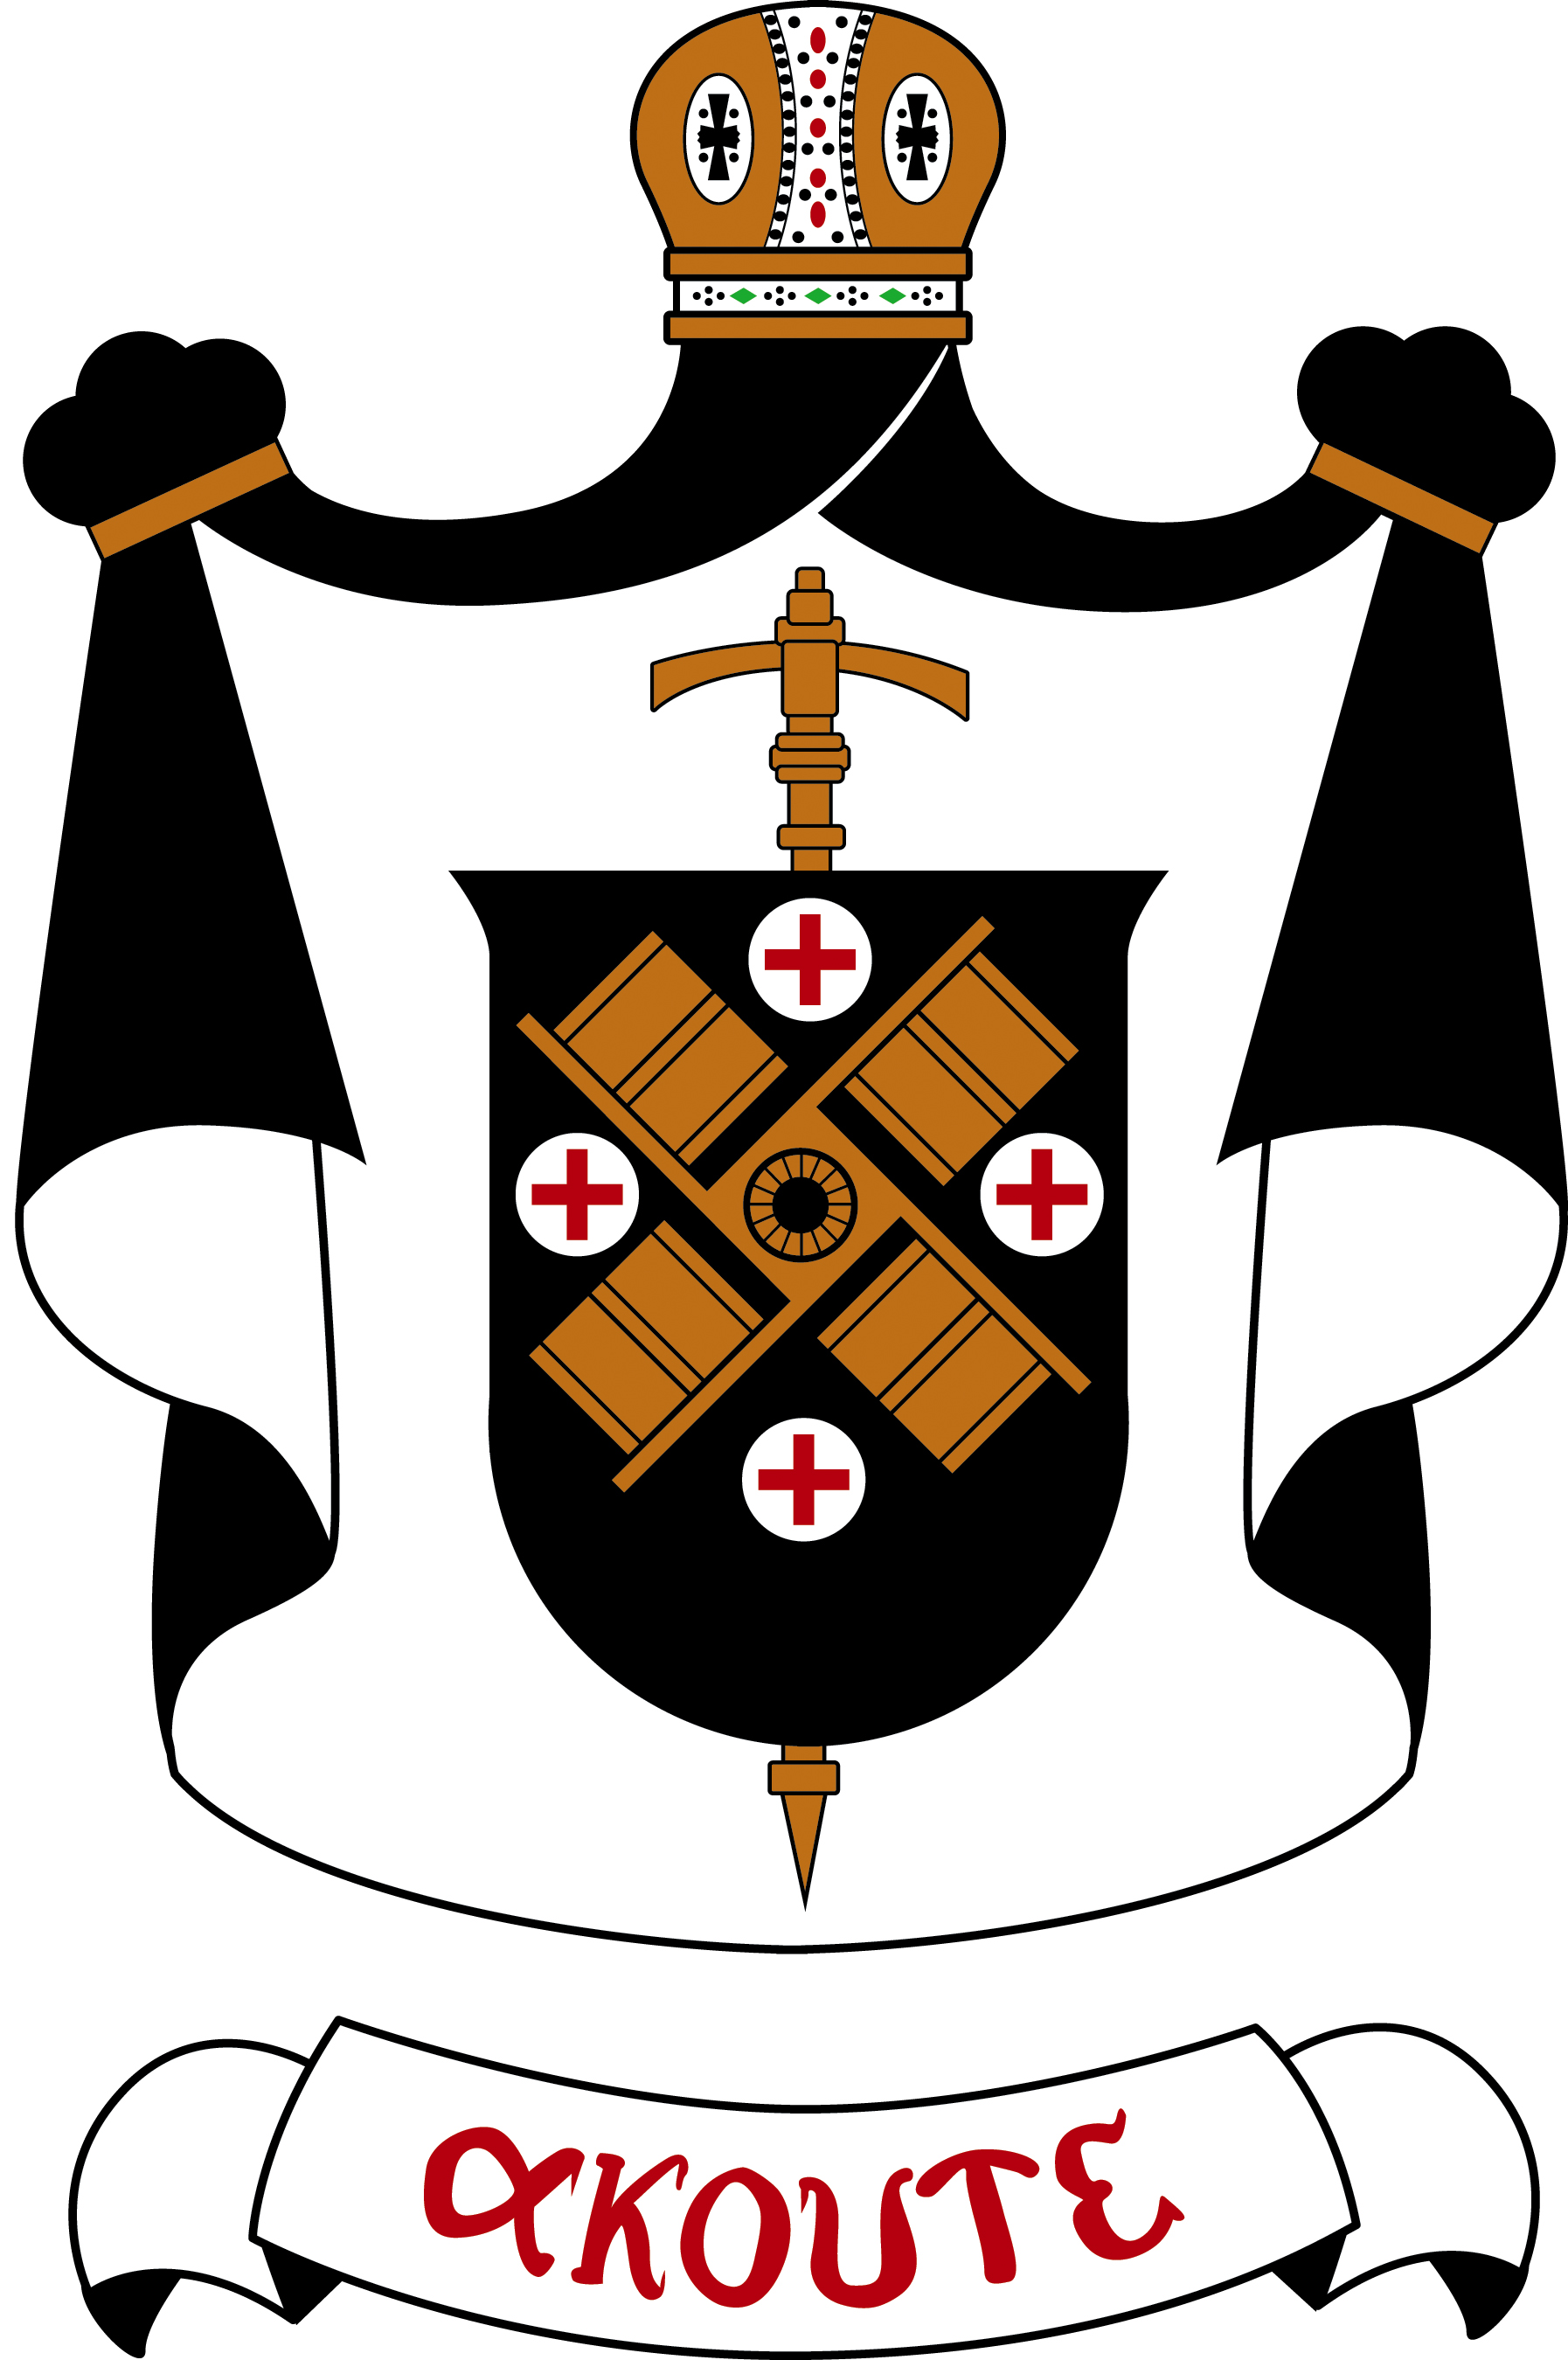 Rt. Rev. Paschal Morlino, O.S.B., Coat of Arms